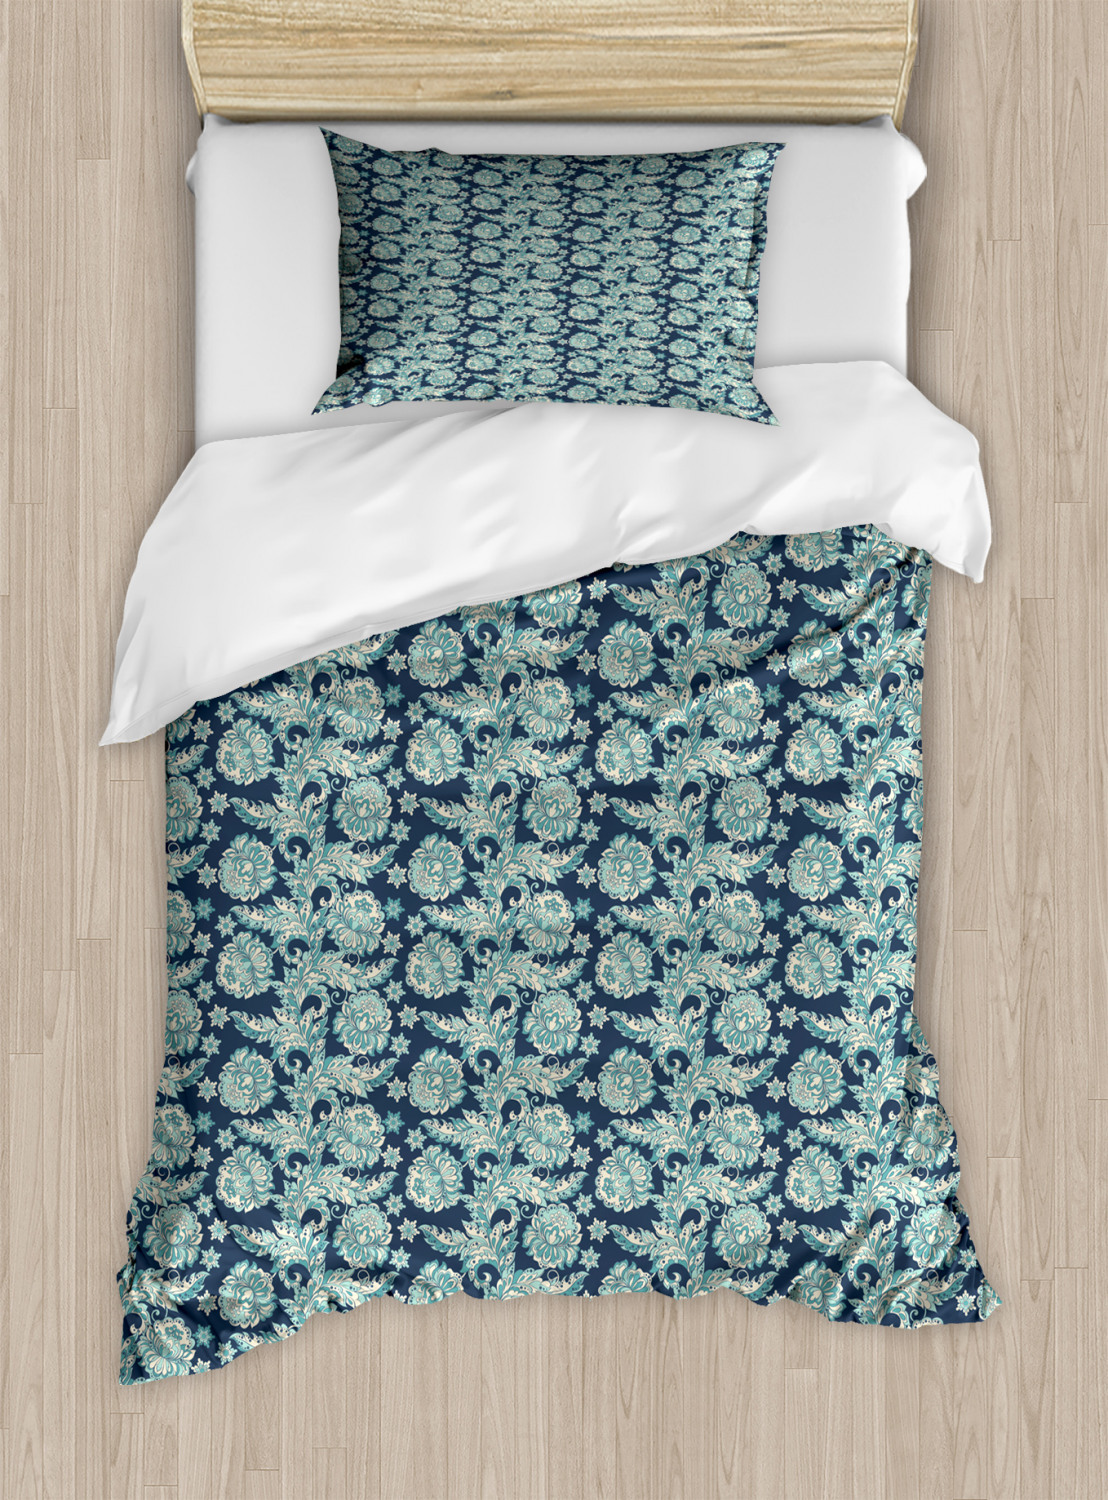 Timeless-Oriental-Duvet-Cover-Set-Twin-Queen-King-Sizes-with-Pillow-Shams thumbnail 49